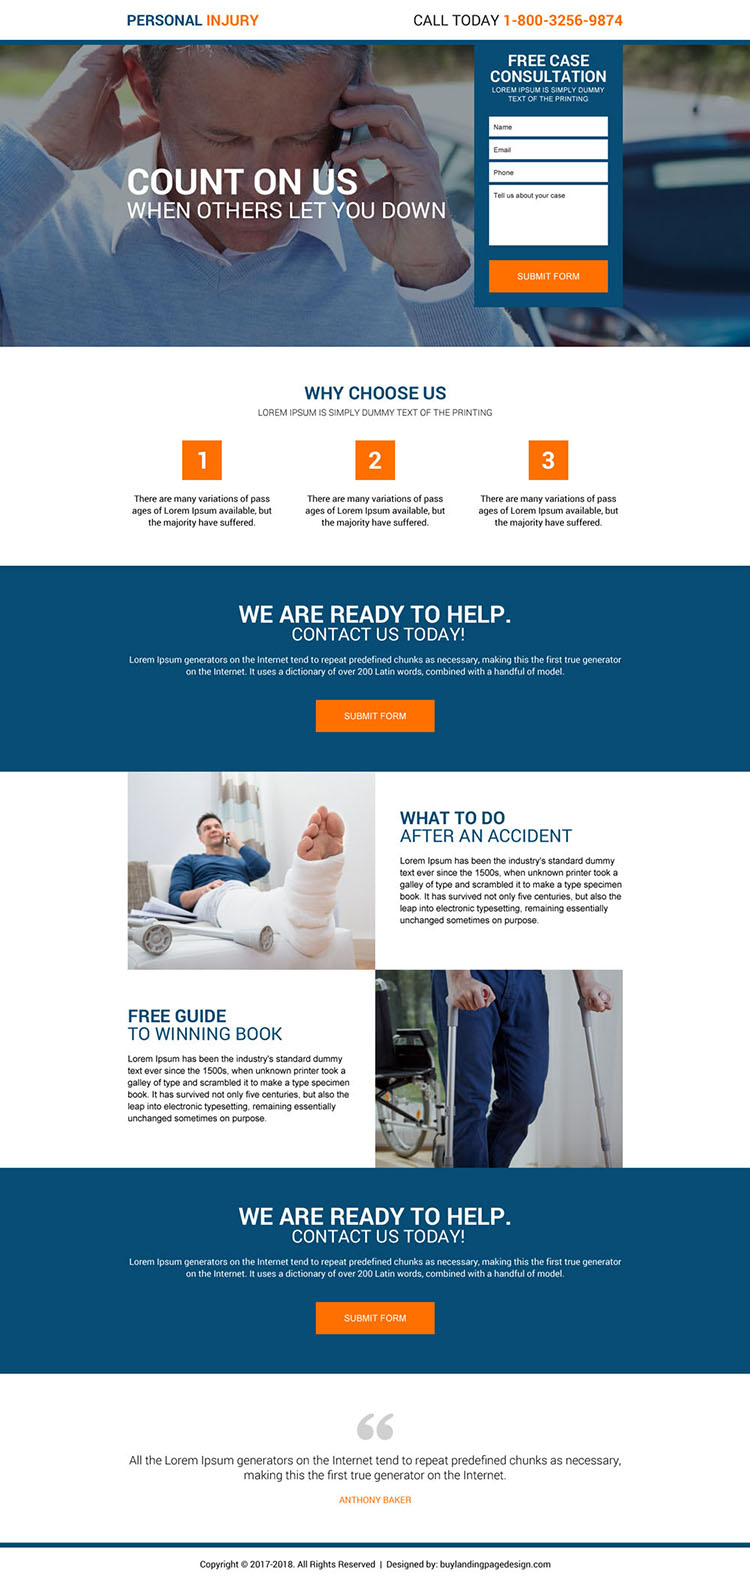 personal injury free case consultation landing page